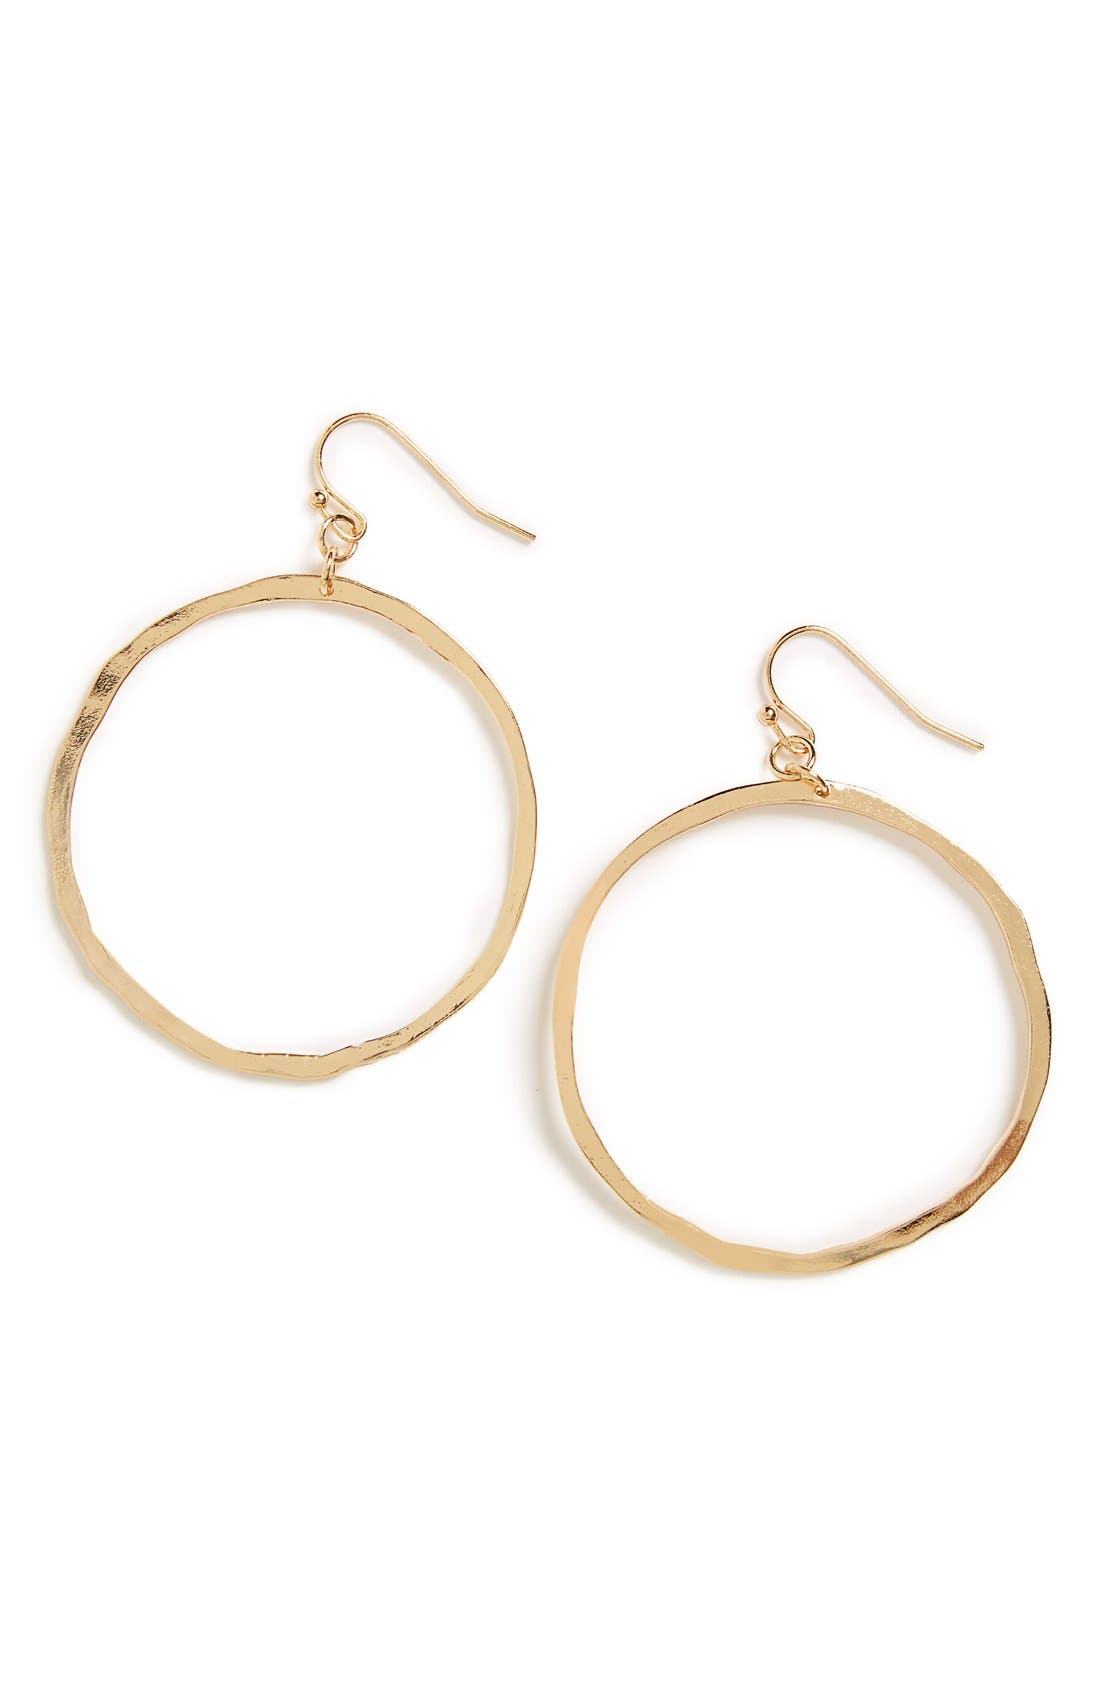 Main Image - BP. Hammered Circle Earrings